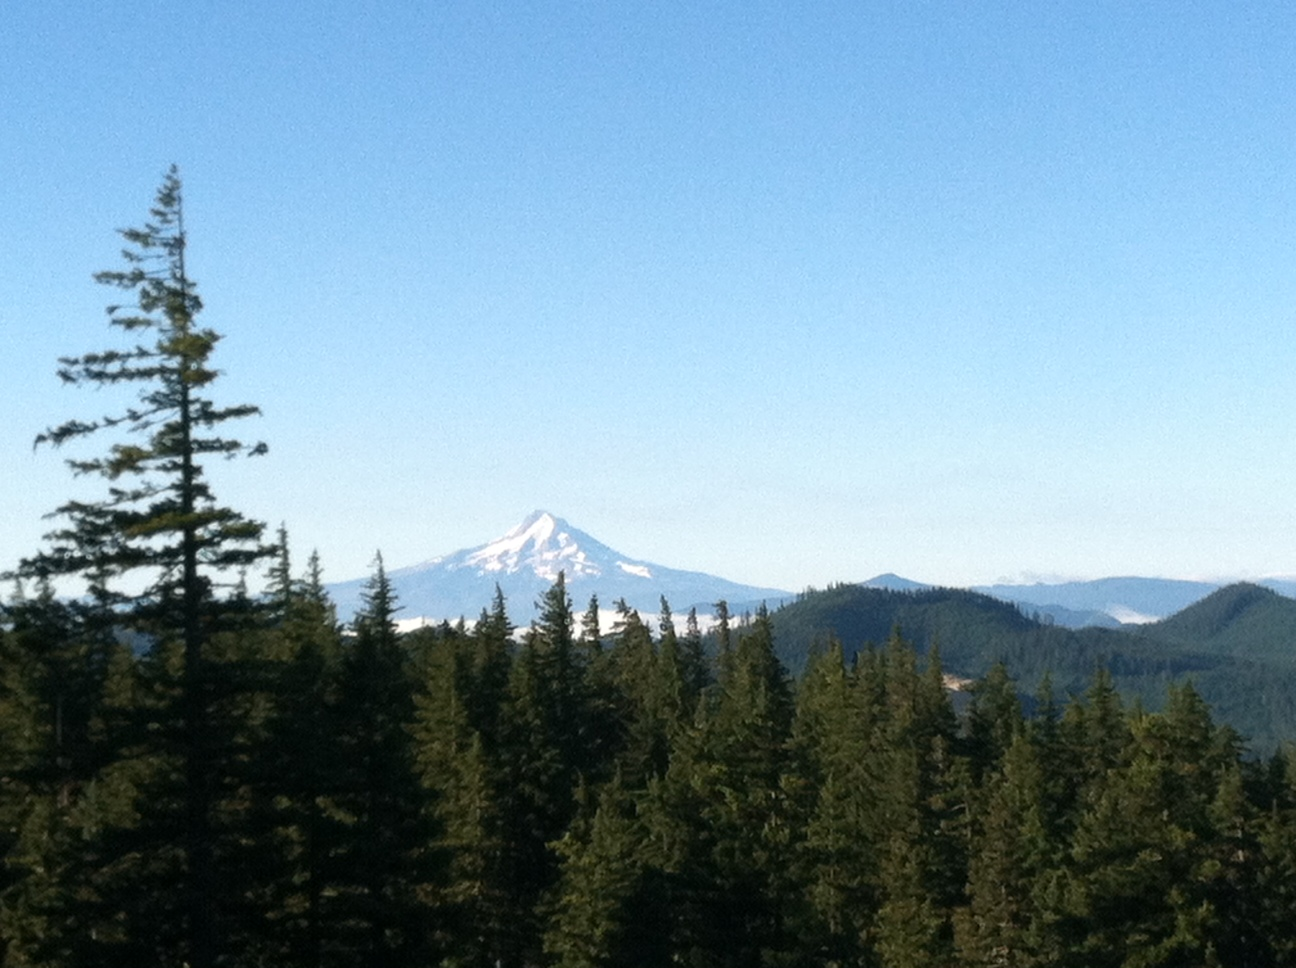 Oregon's Mt. Hood, as seen from the location of my last bear harvest.